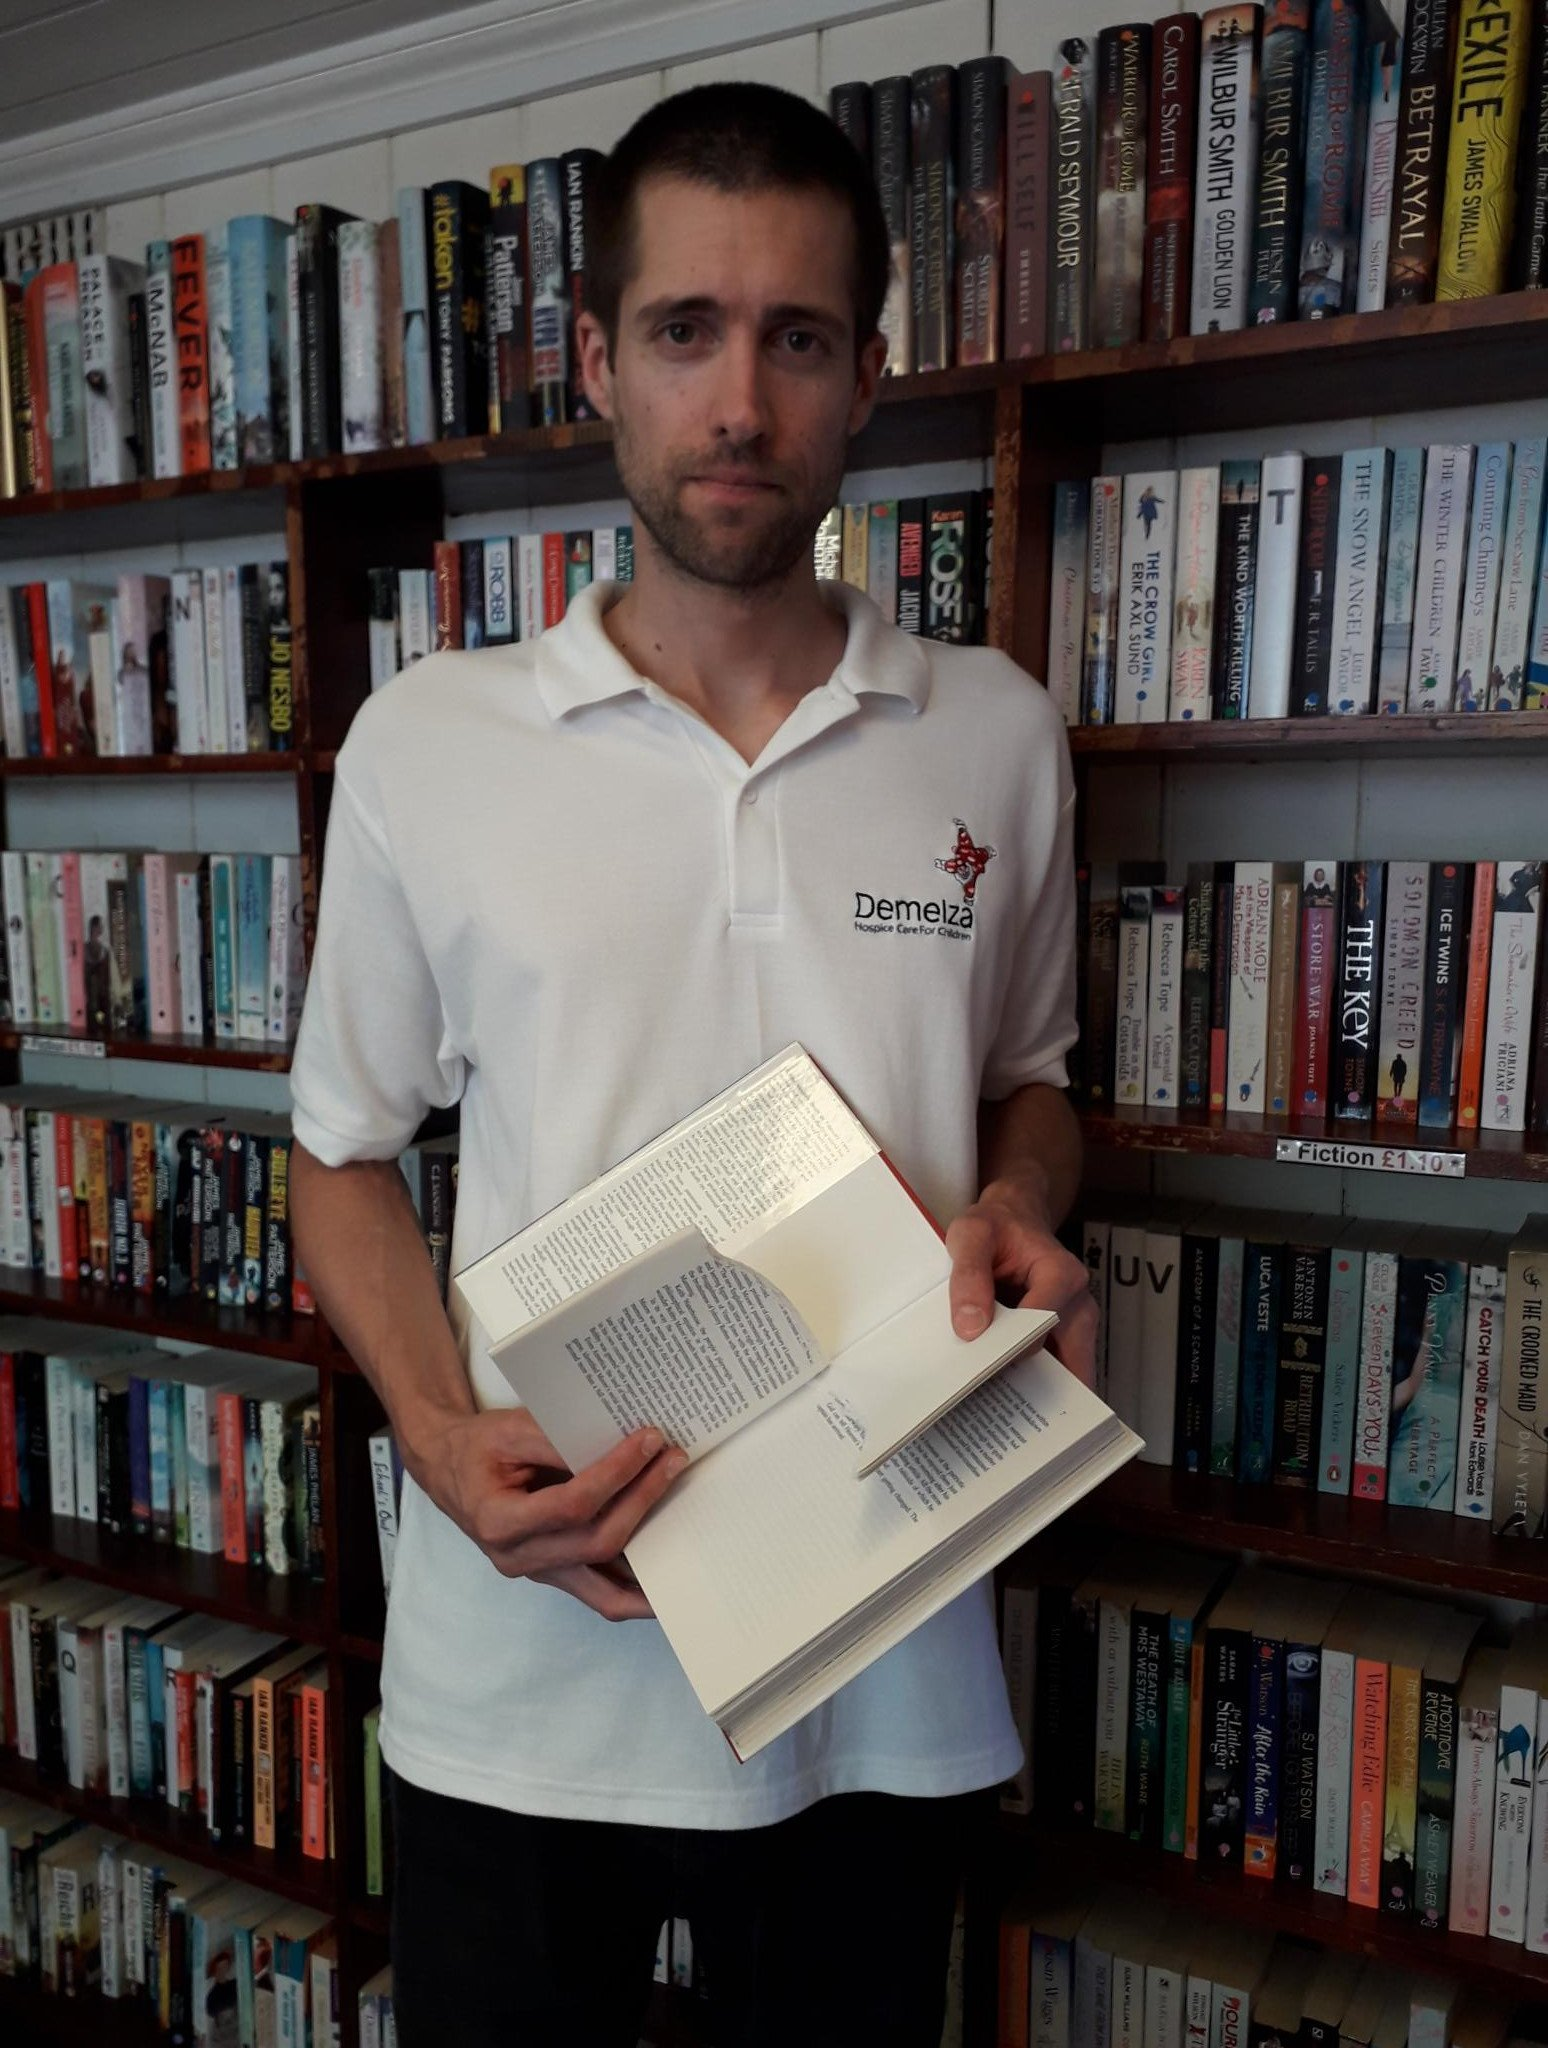 Bookshop manager Nick Rogers with one of the torn books